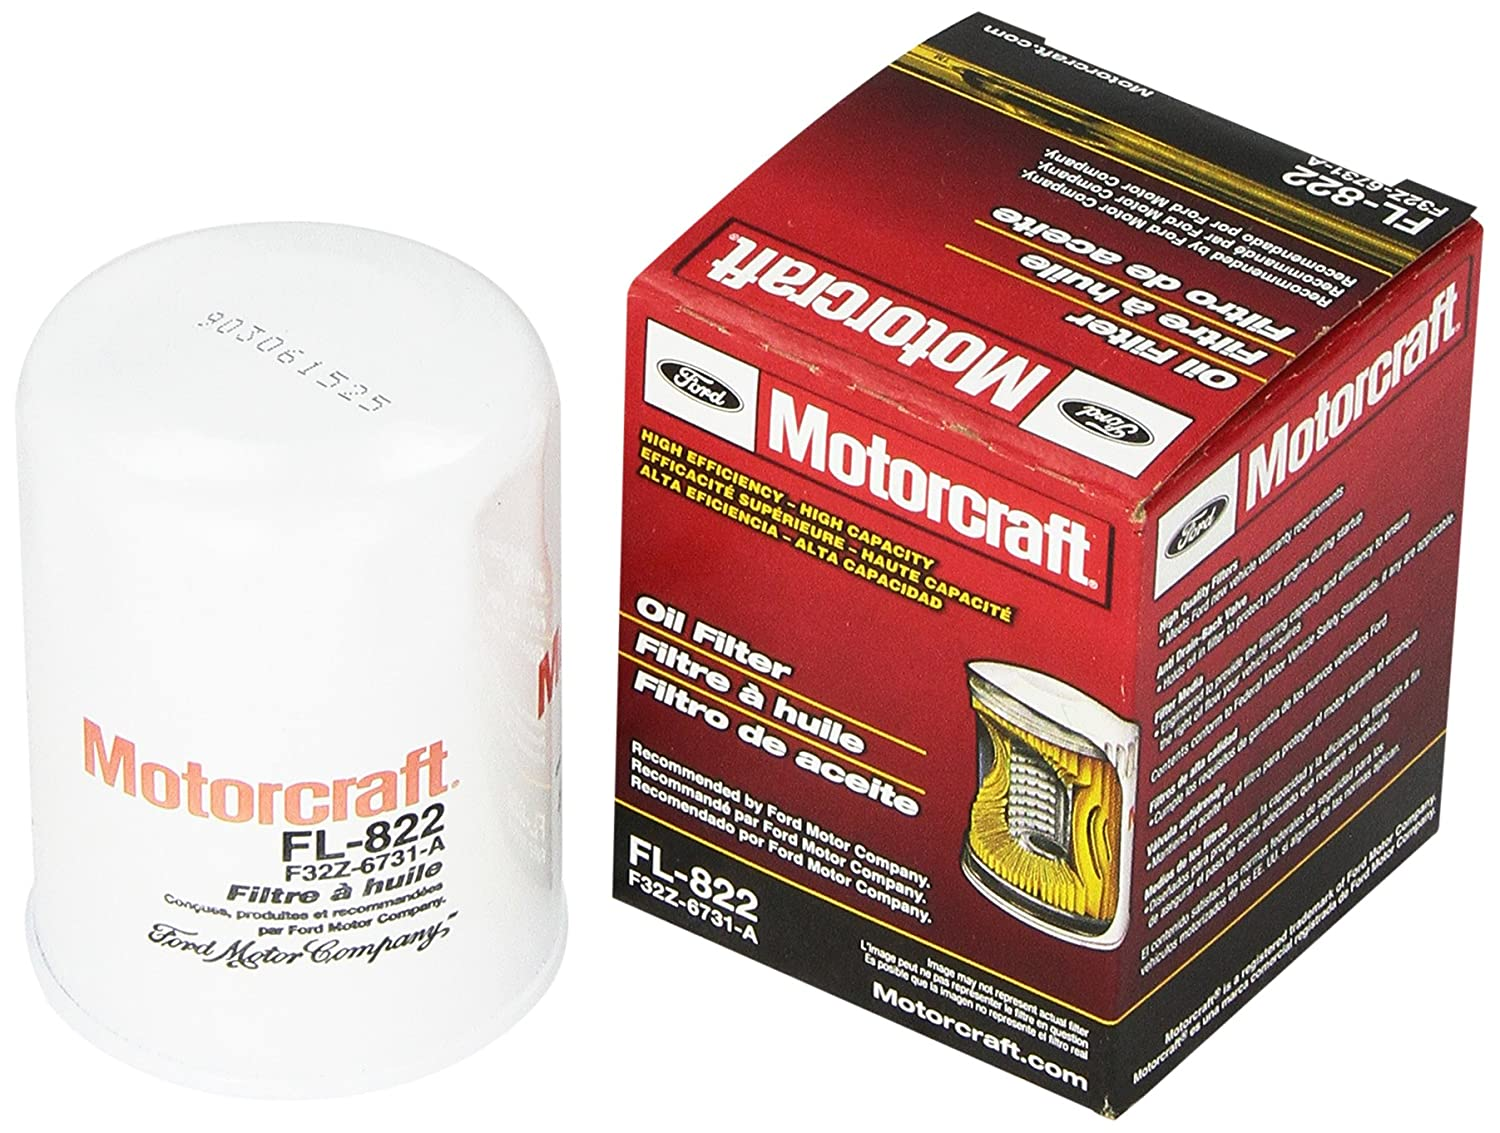 Motorcraft FL822 Oil Filter